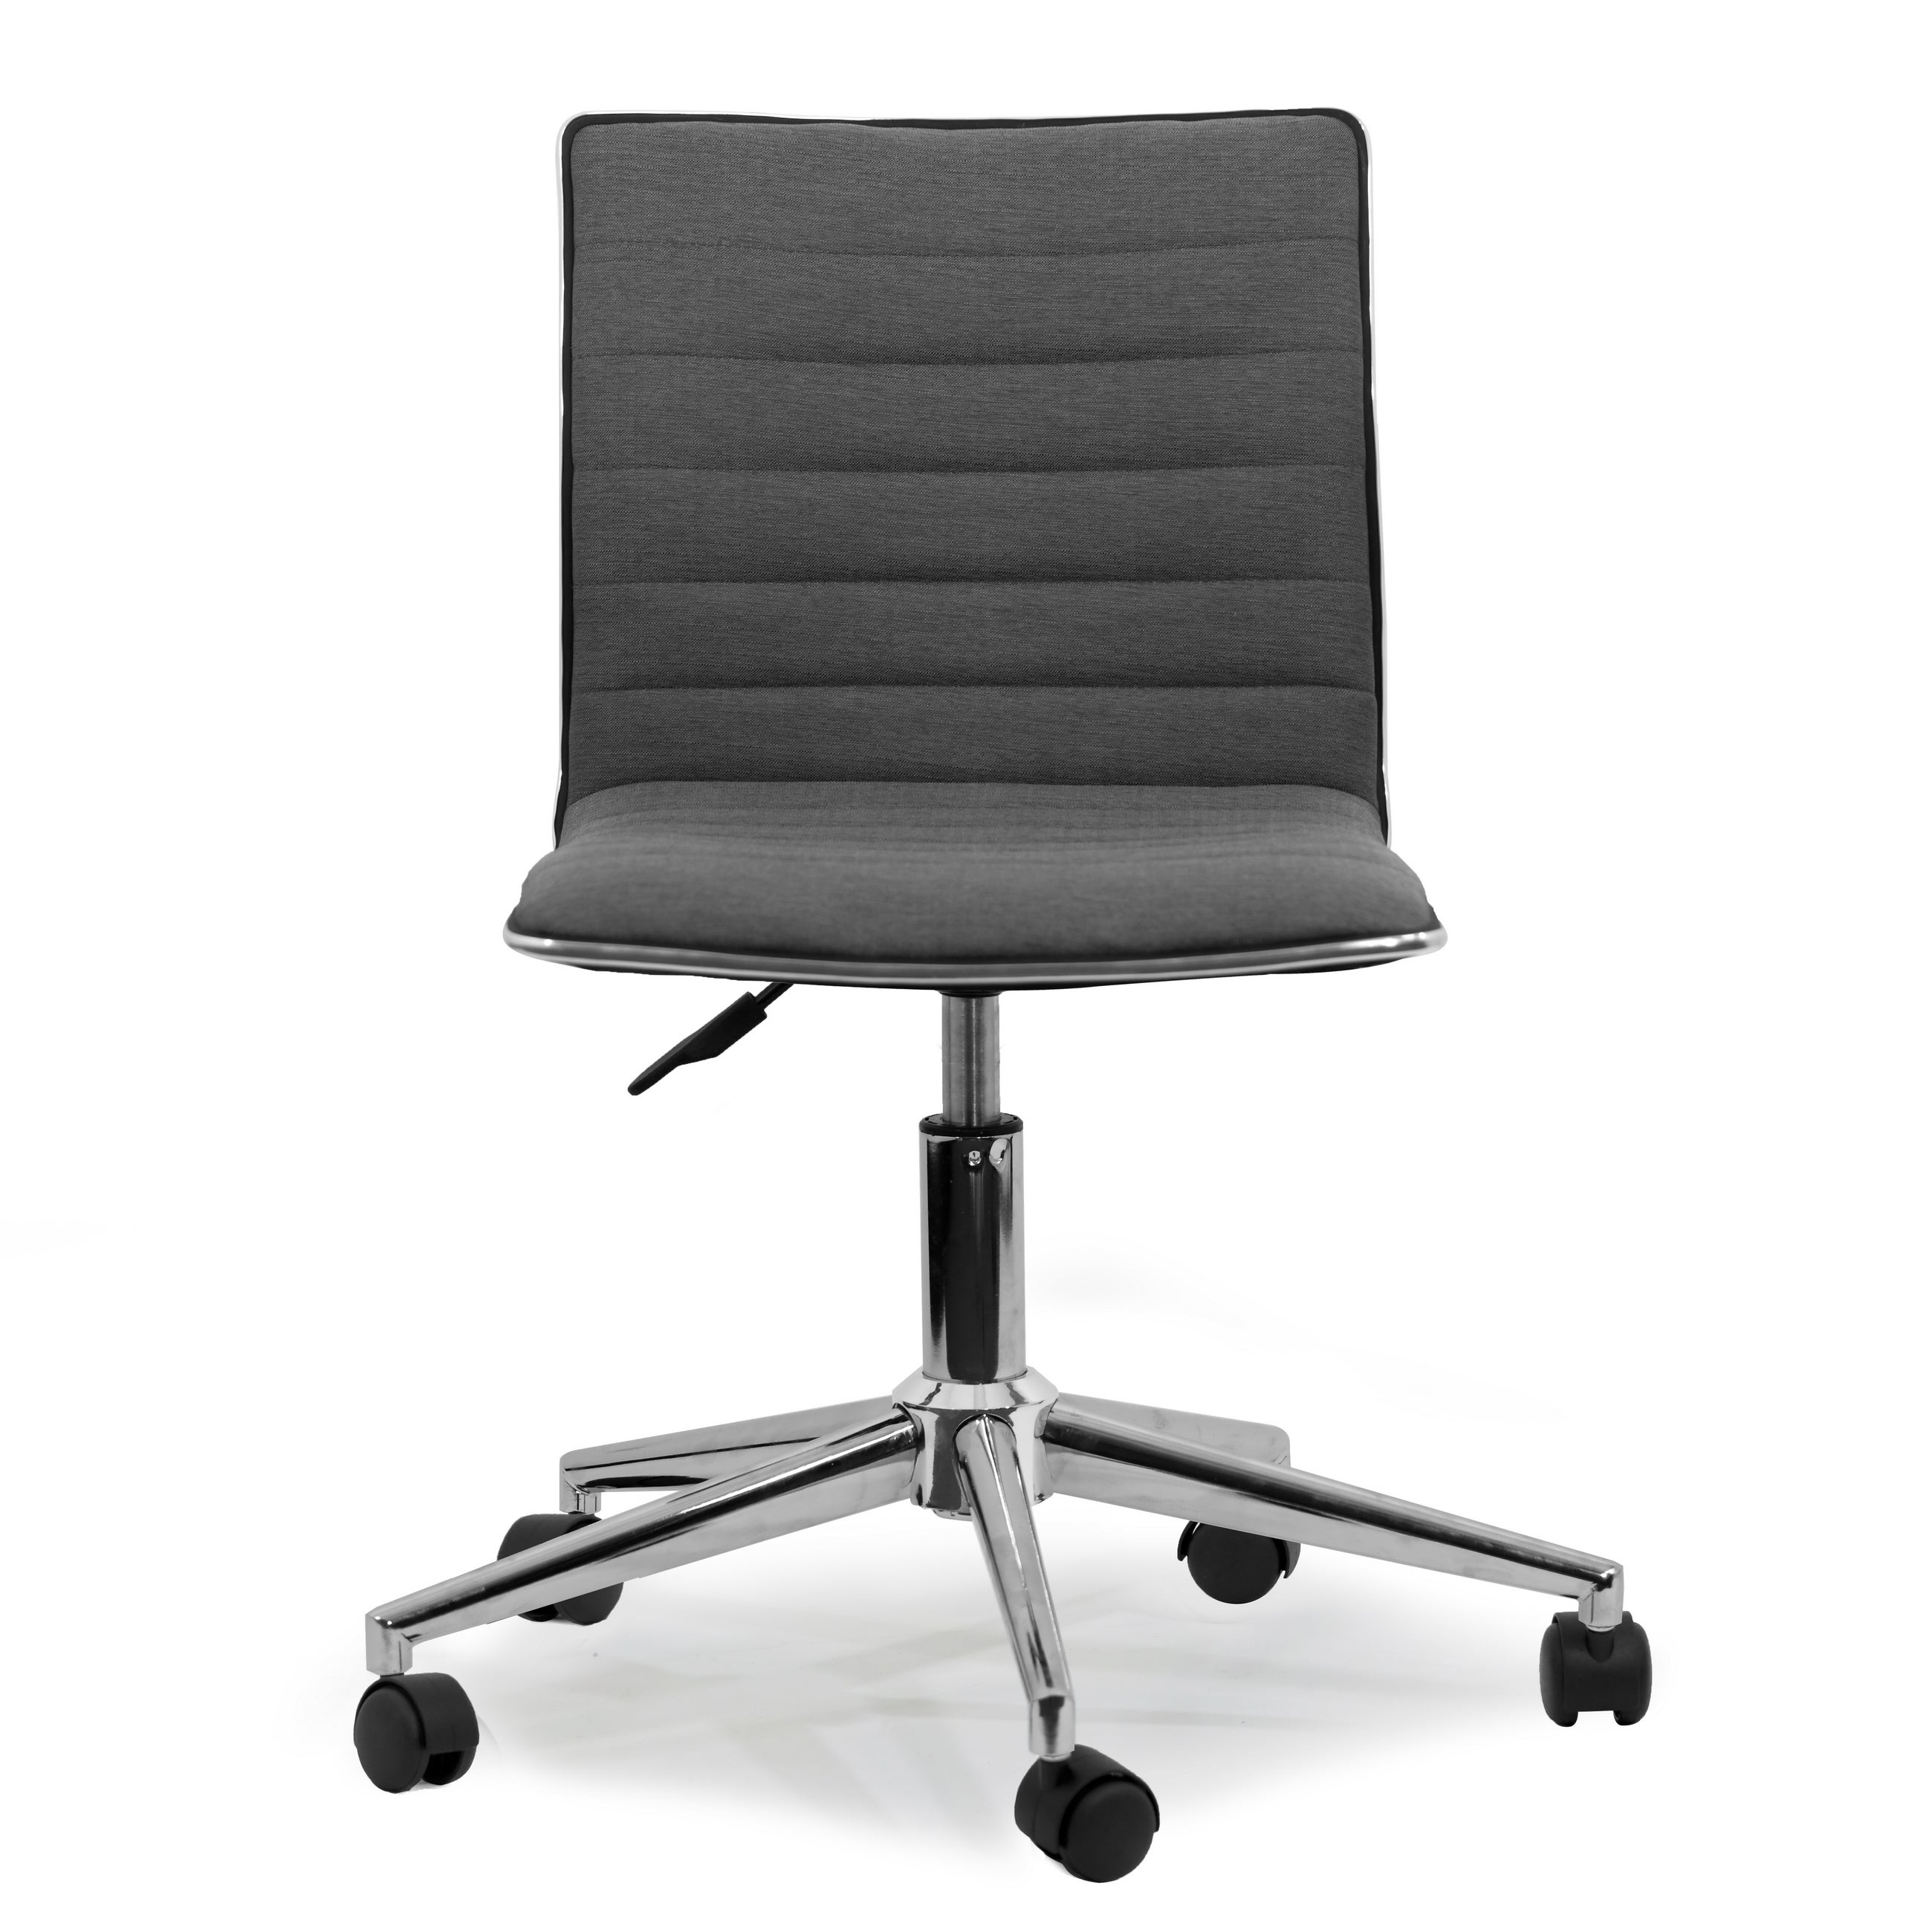 Aiko Grey Fabric Chrome Metal Swivel Office Chair With Wheels On Free Shipping Today 12816273